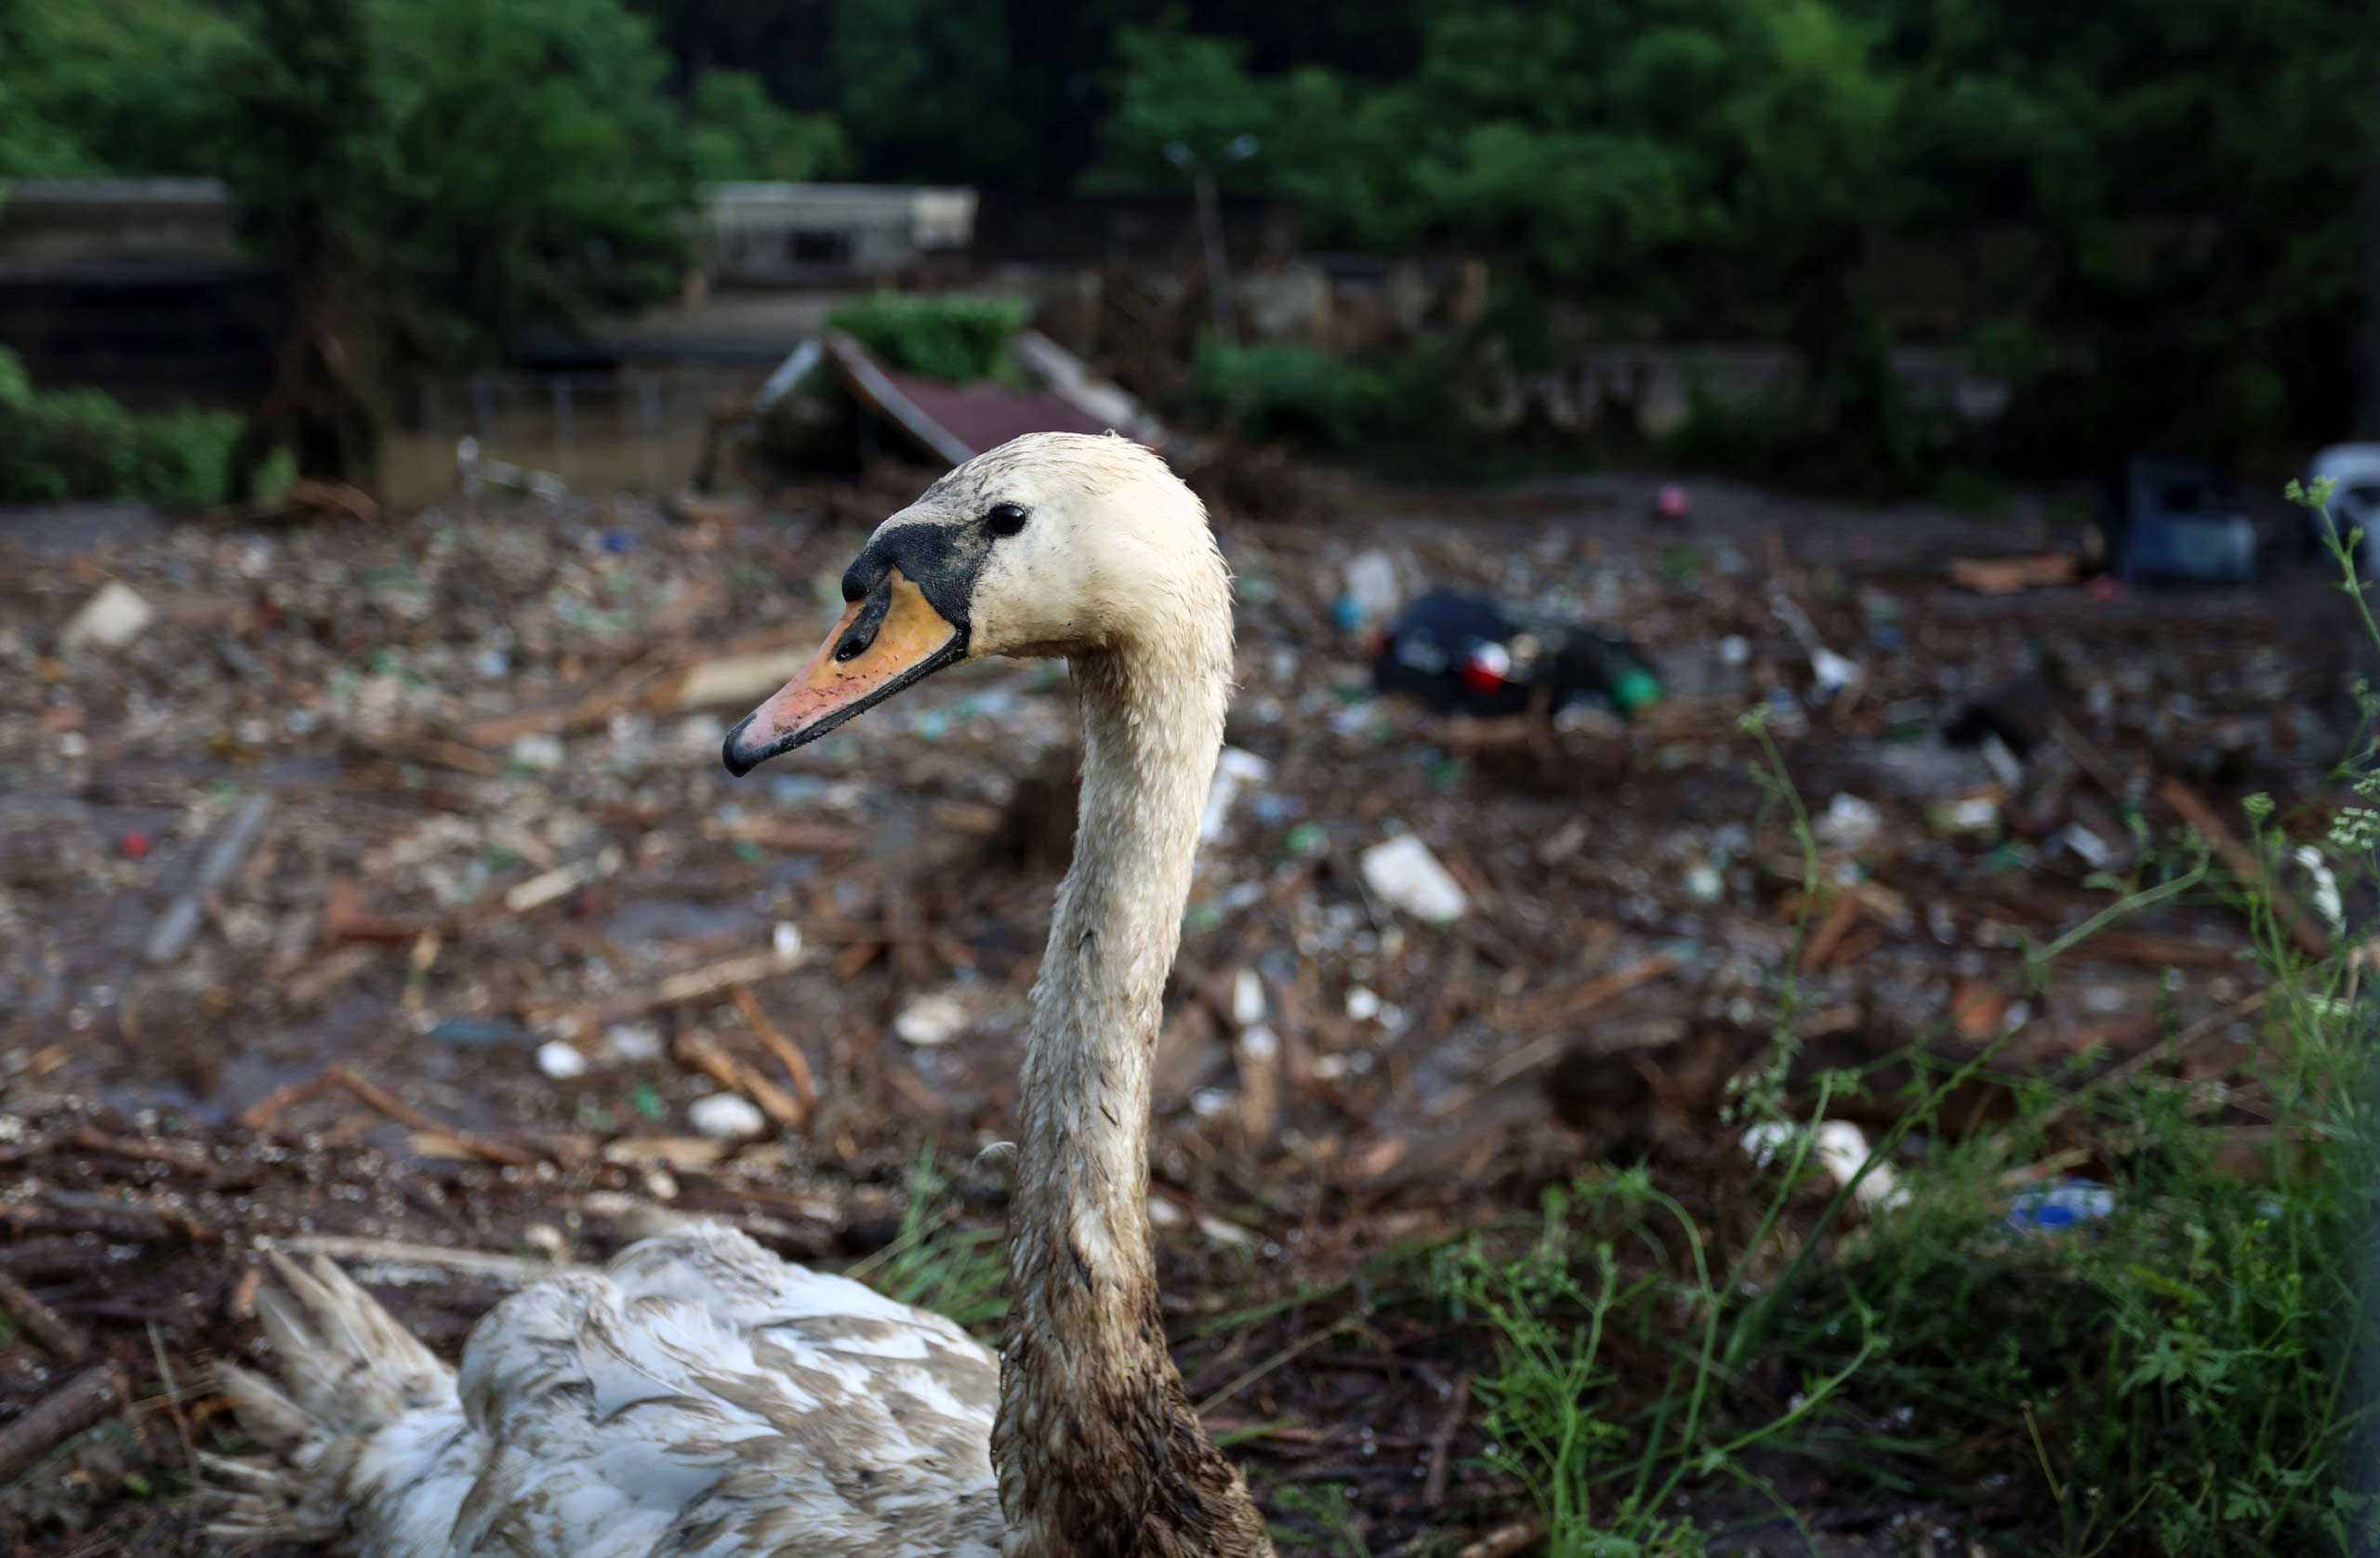 A wounded swan is seen at a flooded zoo area in Tbilisi, Georgia on June 14, 2015.